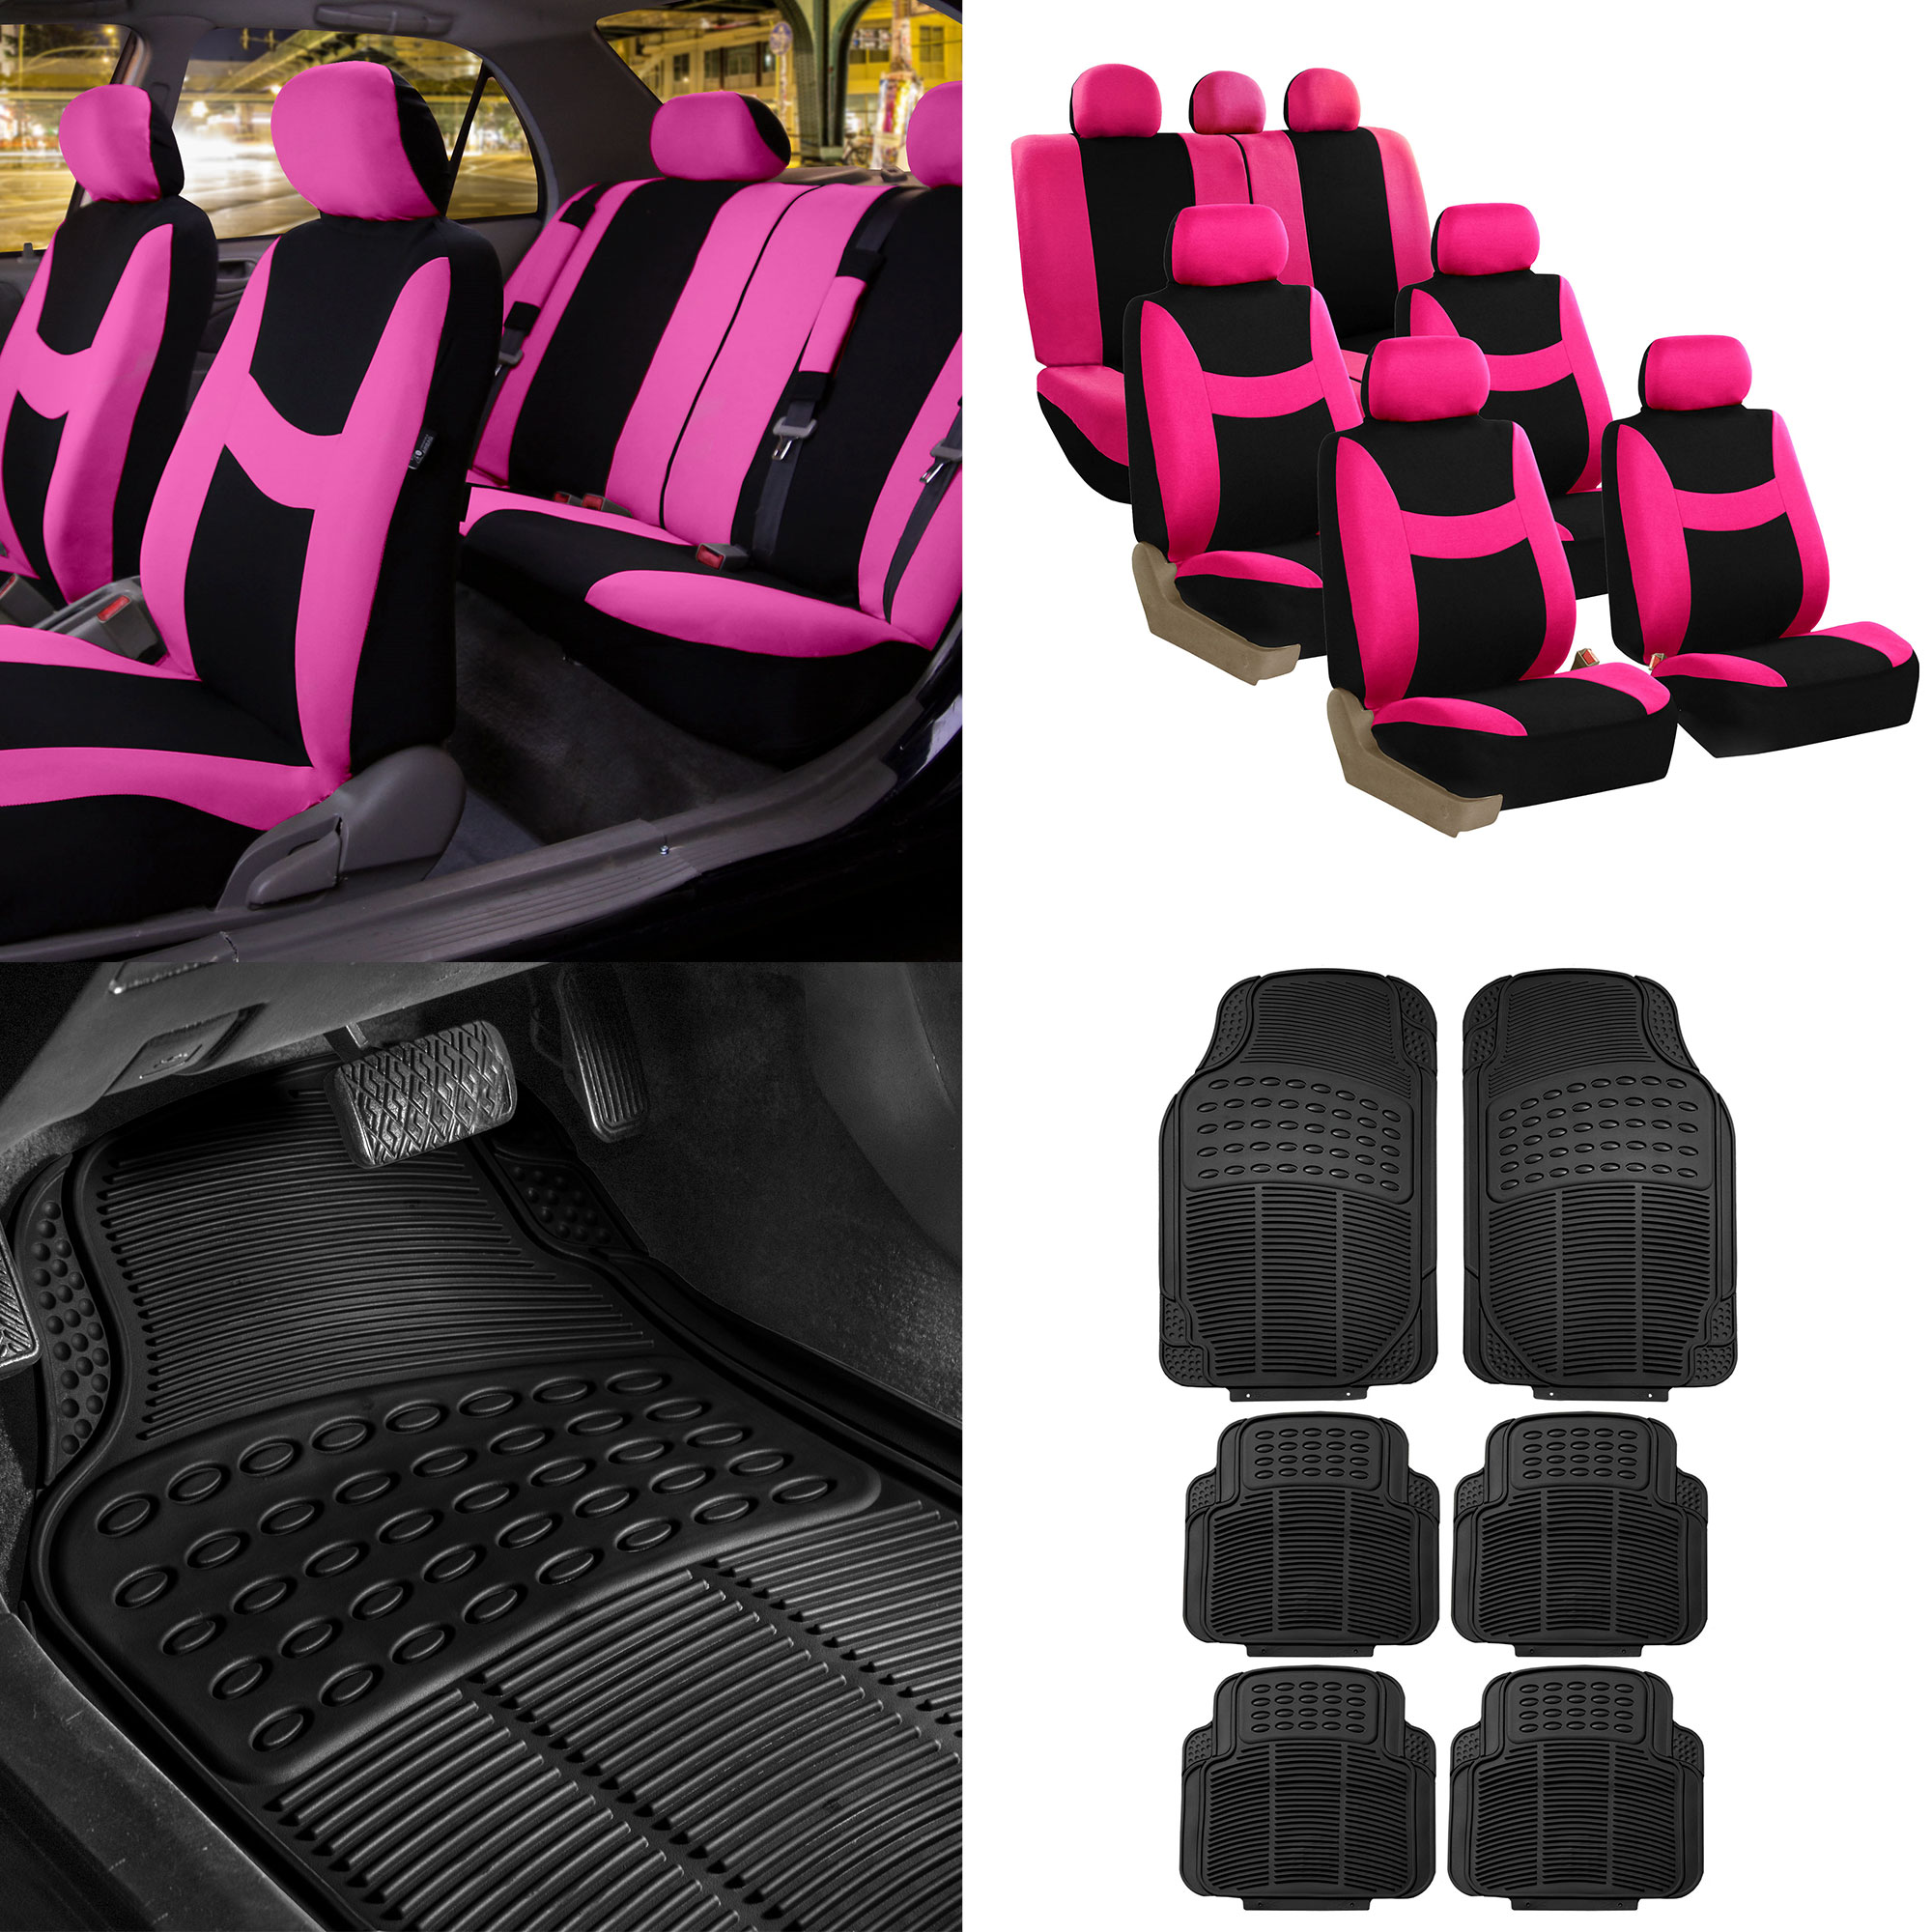 FH Group, 7 Seaters 3 Row Pink Black Seat Covers for SUV Van Combo with Black Floor Mats